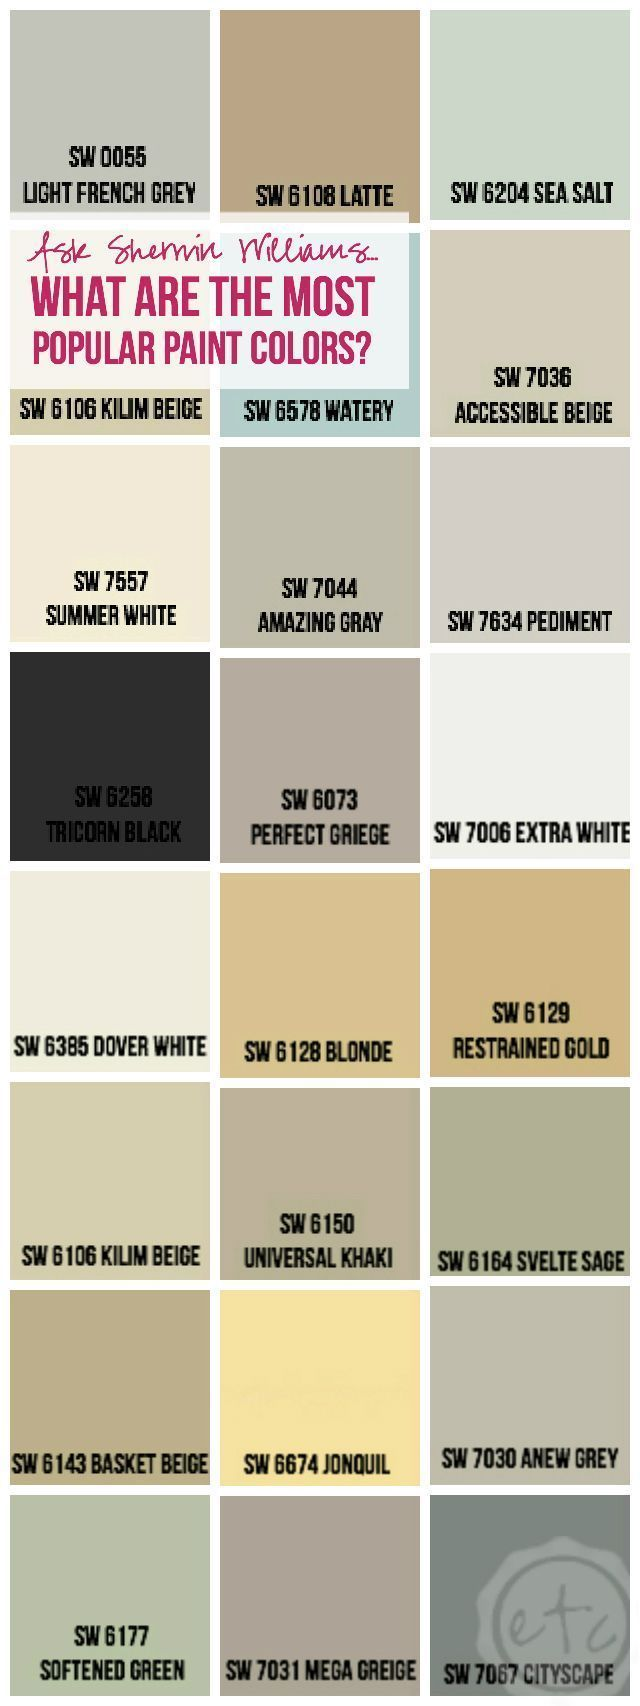 Ask Sherwin Williams... What are the most popular paint colors? with Happily Ever After, Etc.